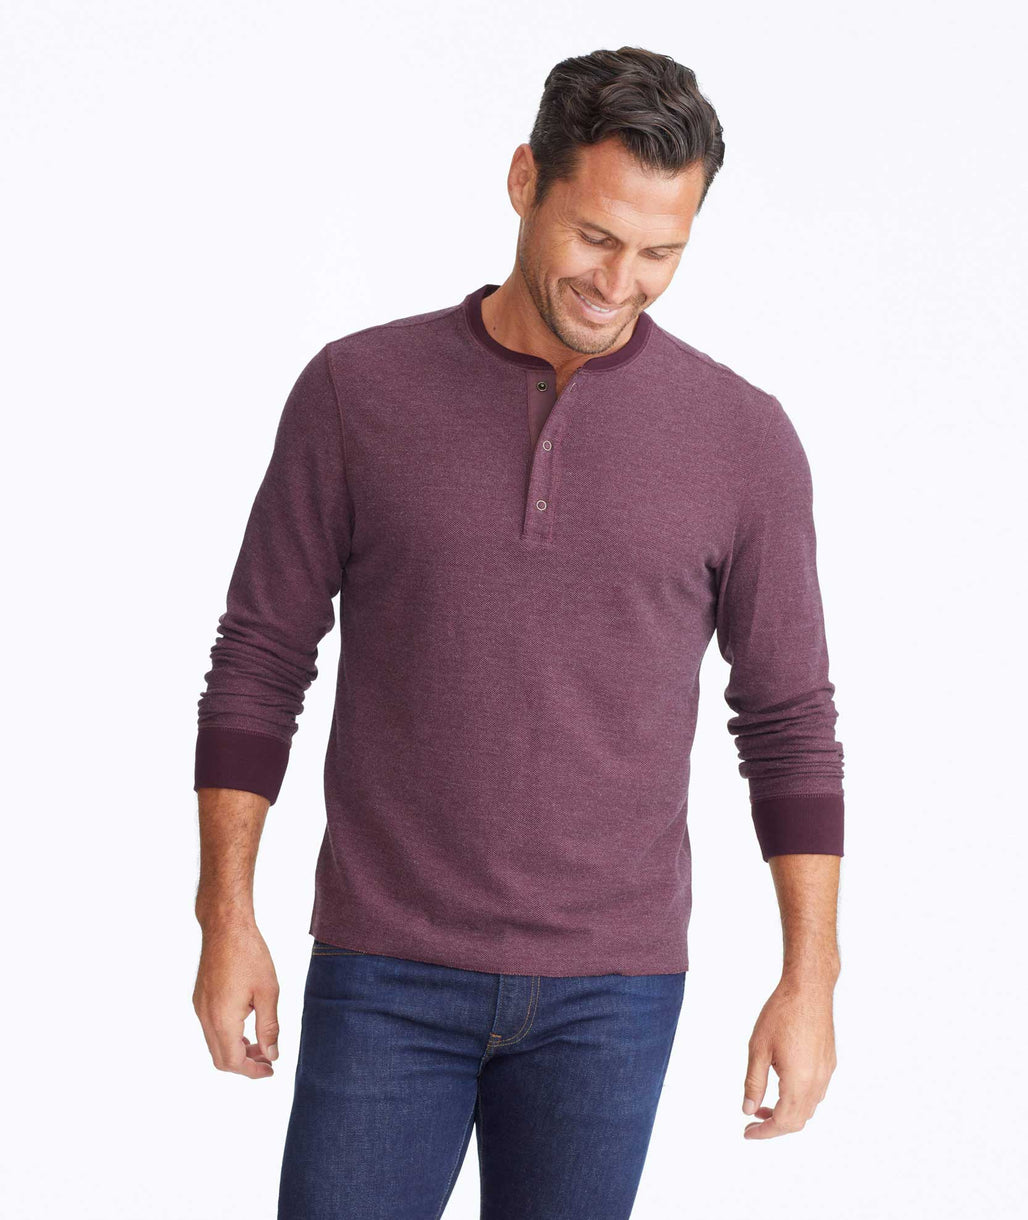 Model wearing a Dark Purple Textured Long-Sleeve Henley